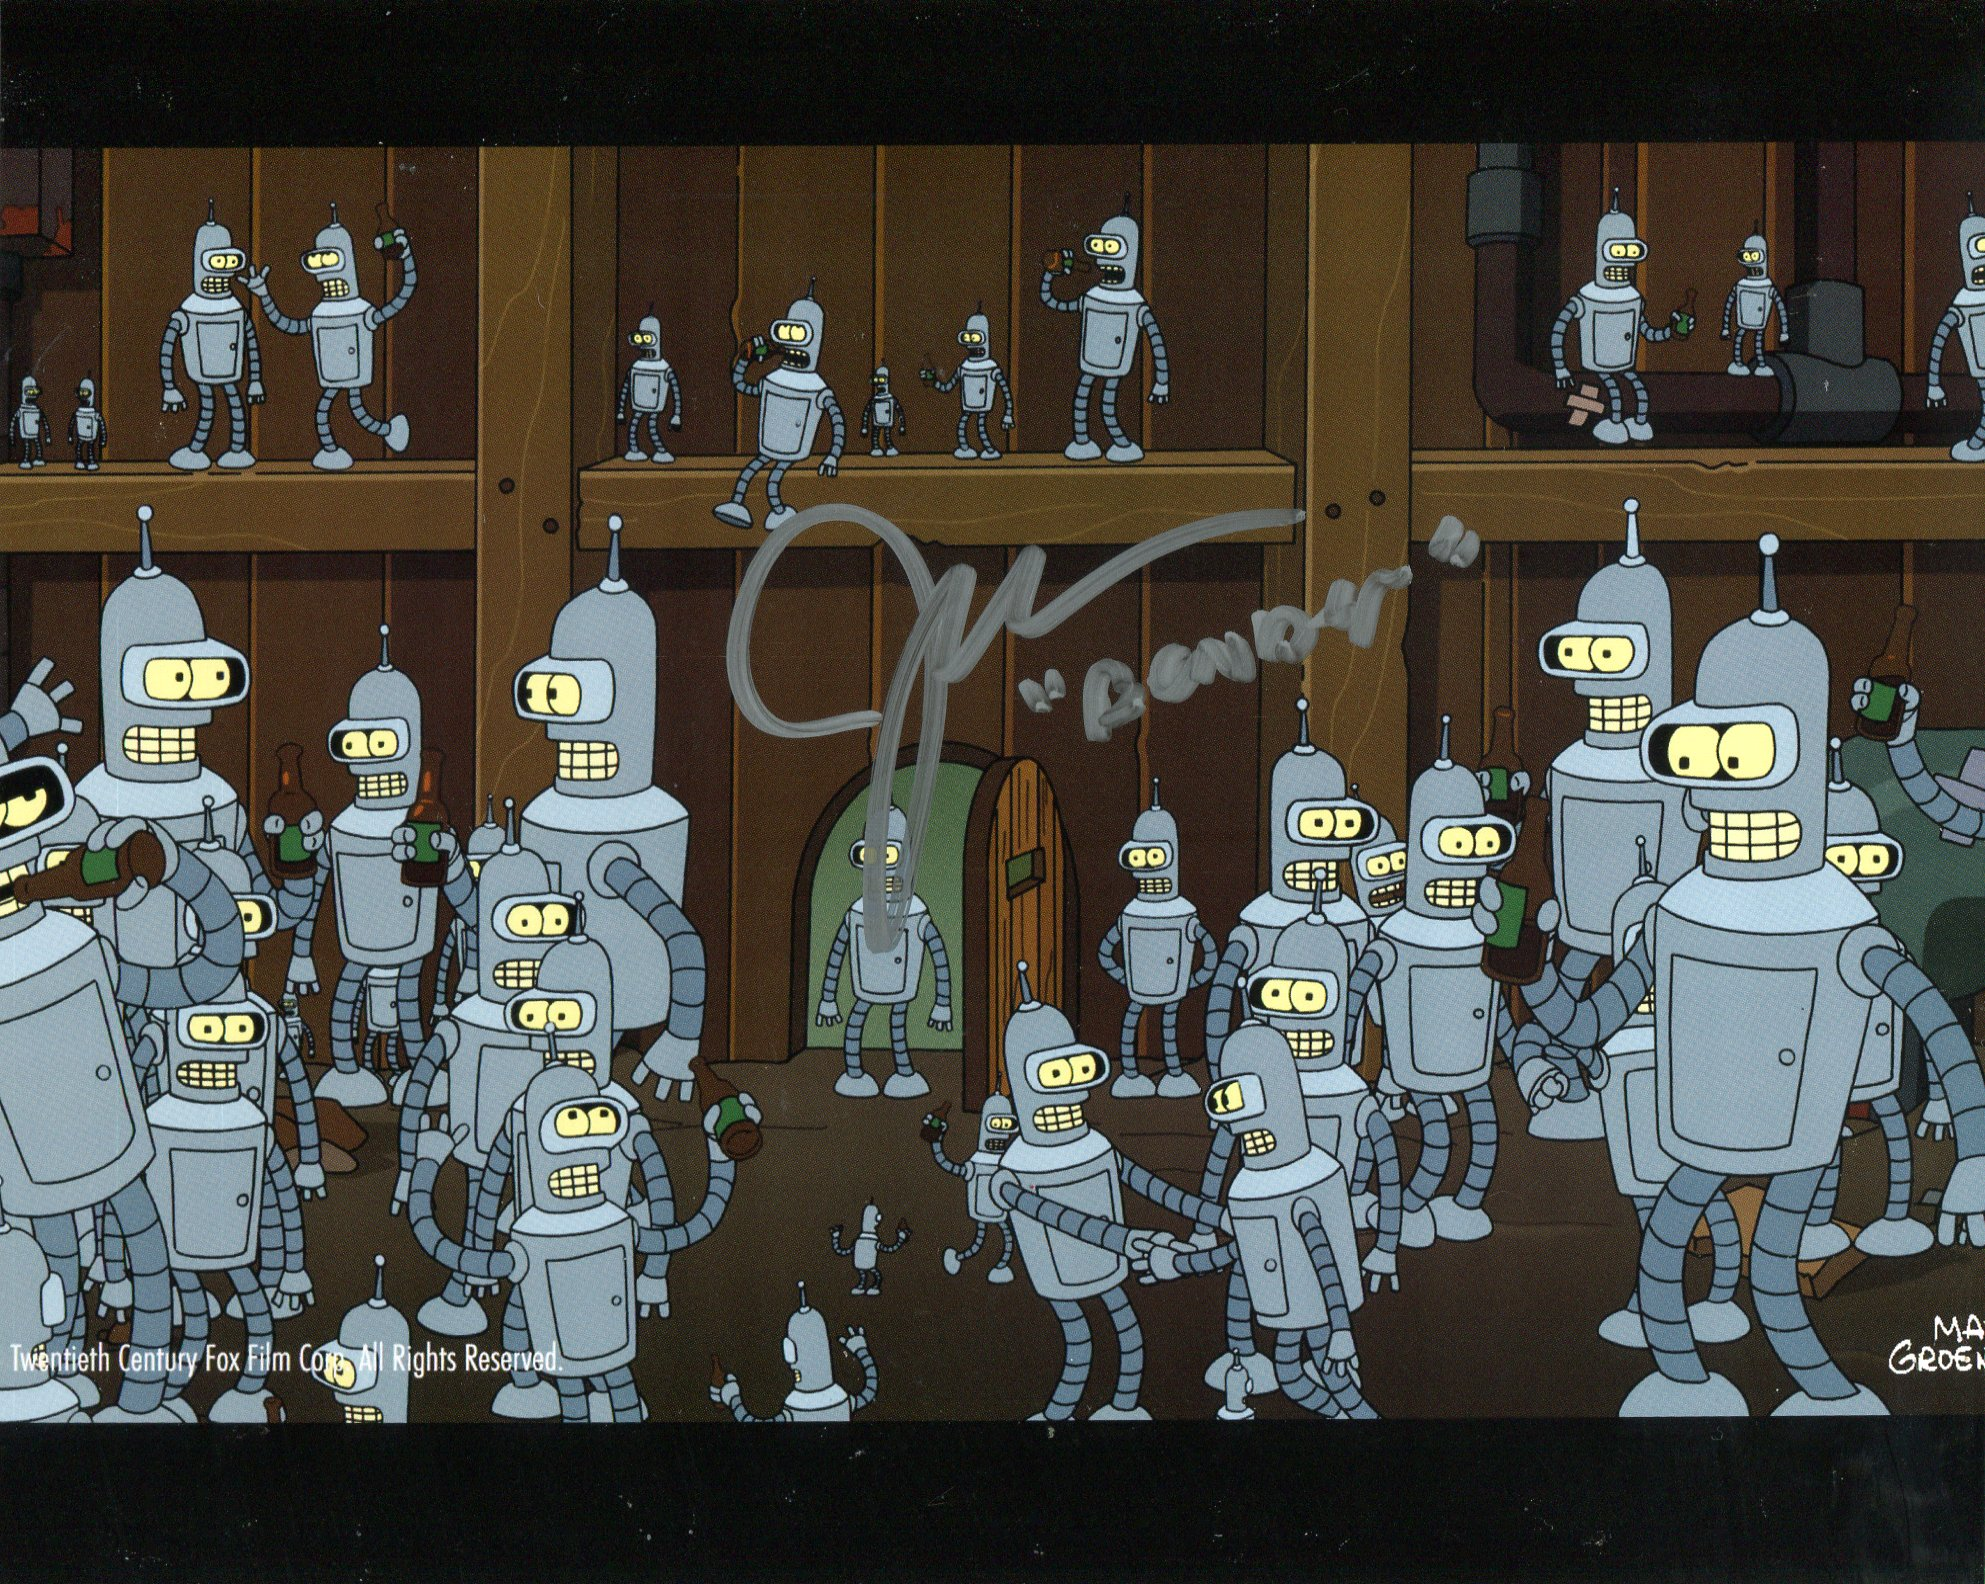 Futurama 8x10 animated comedy photo signed by actor John DiMaggio. Good condition. All autographs